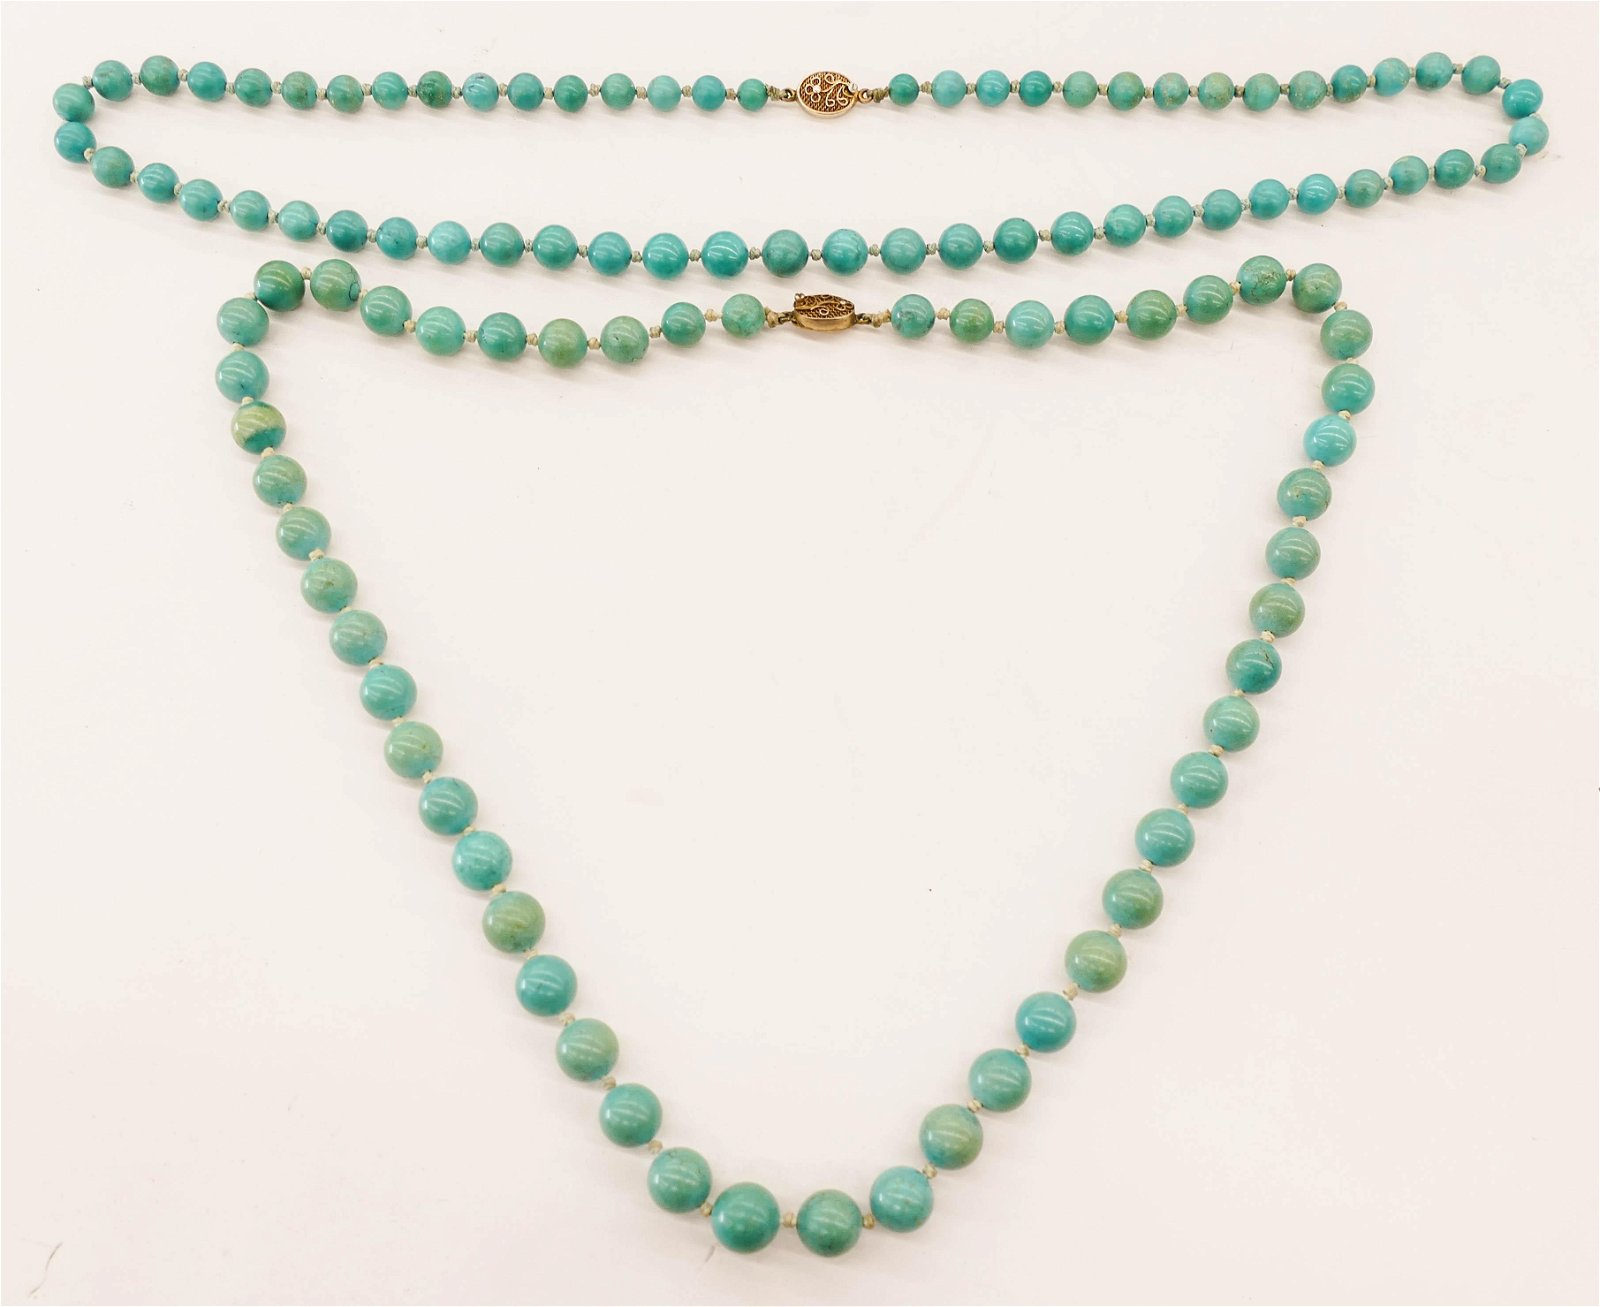 2pc Chinese Turquoise Bead Necklaces 25'' Each.